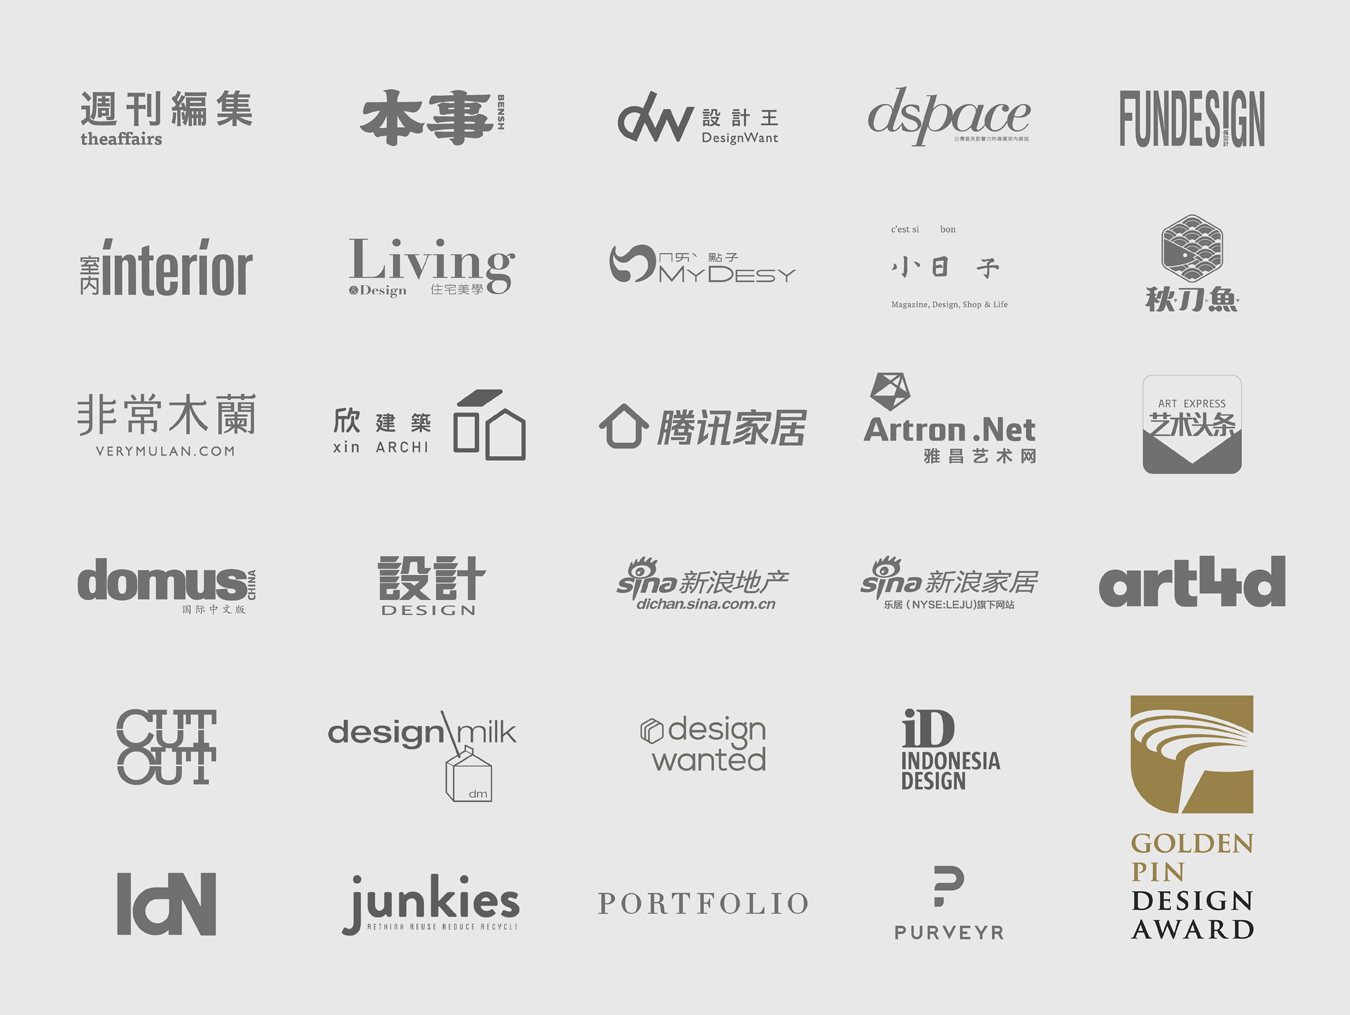 The Golden Pin Design Award 2019 Extends Its Collaboration to 28 Iconic Design Media around the World to Discover Exceptional Designs